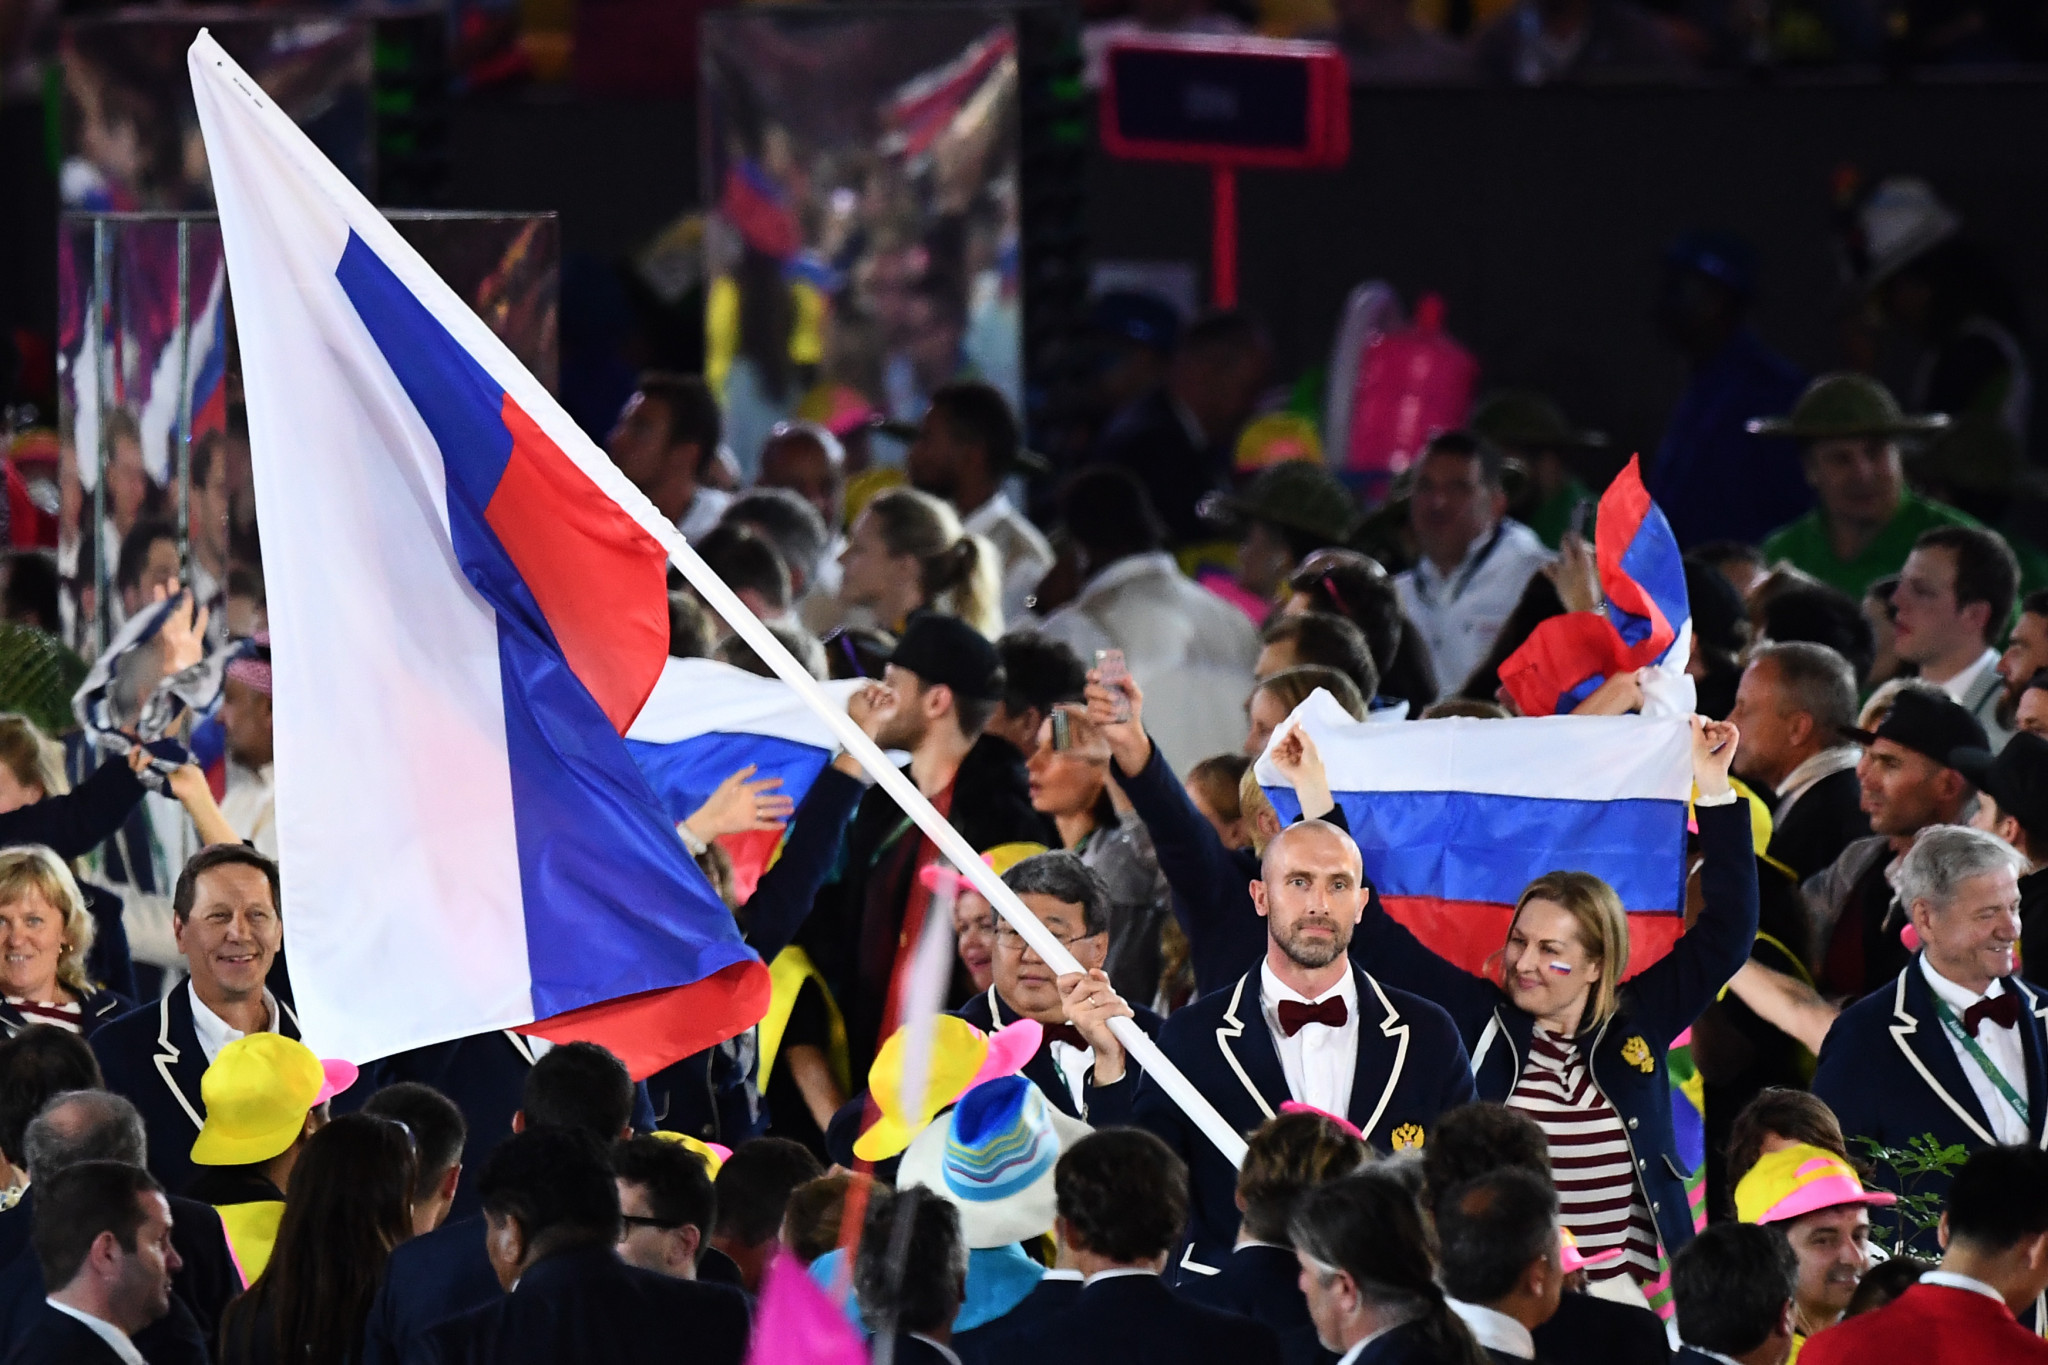 Russia's flag will be banned from major events for four years if CAS upholds WADA's decision ©Getty Images